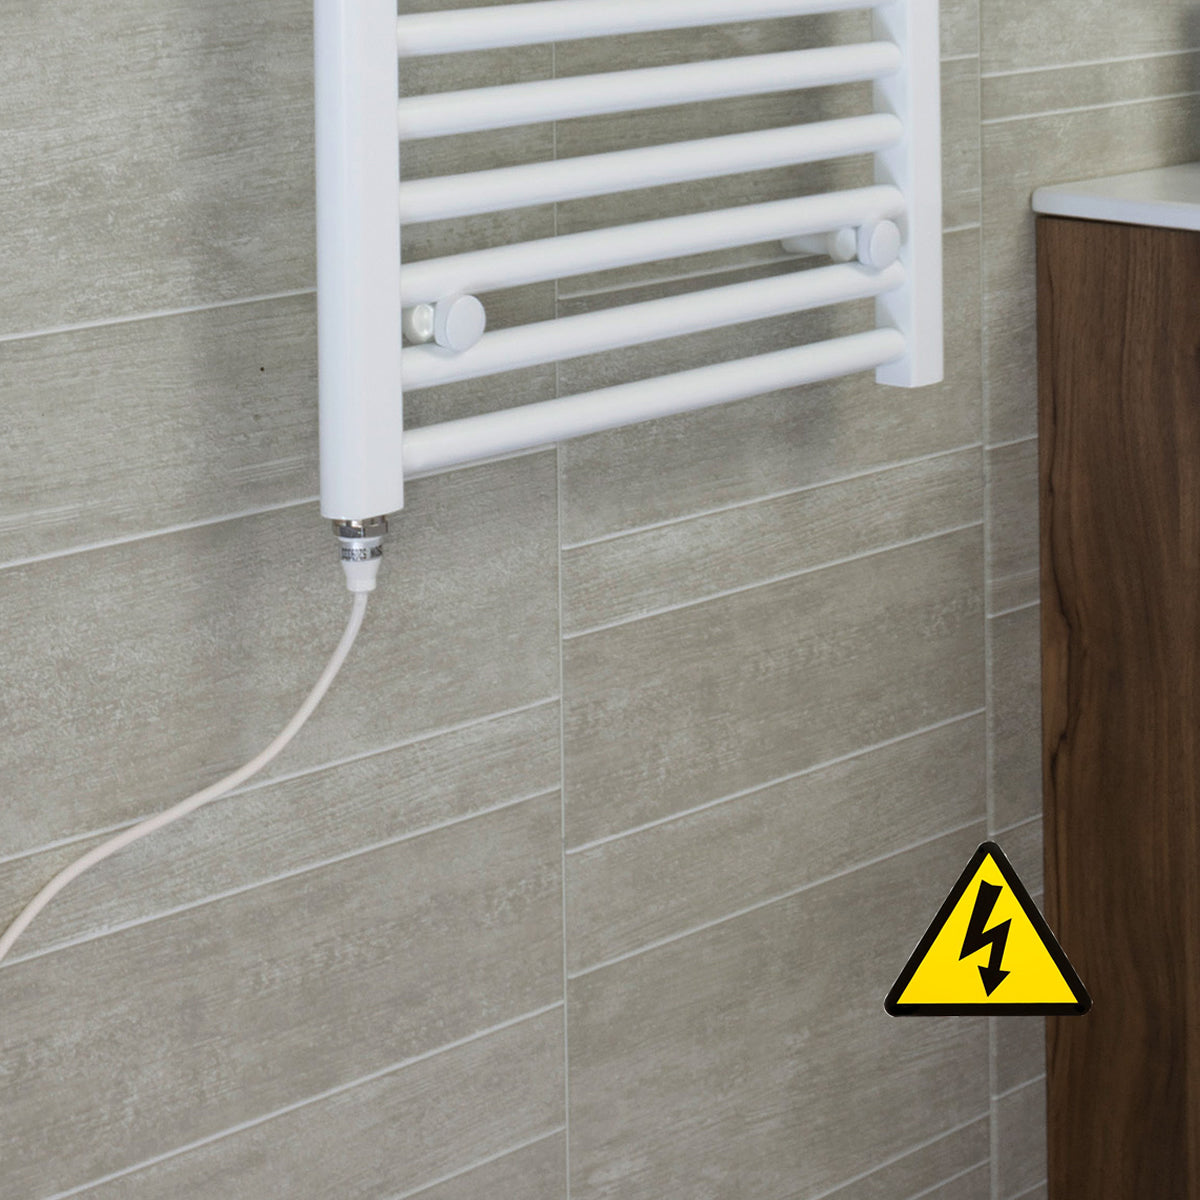 200mm Wide 1200mm High Pre-Filled Chrome Electric Towel Rail Radiator With Single Heat Element